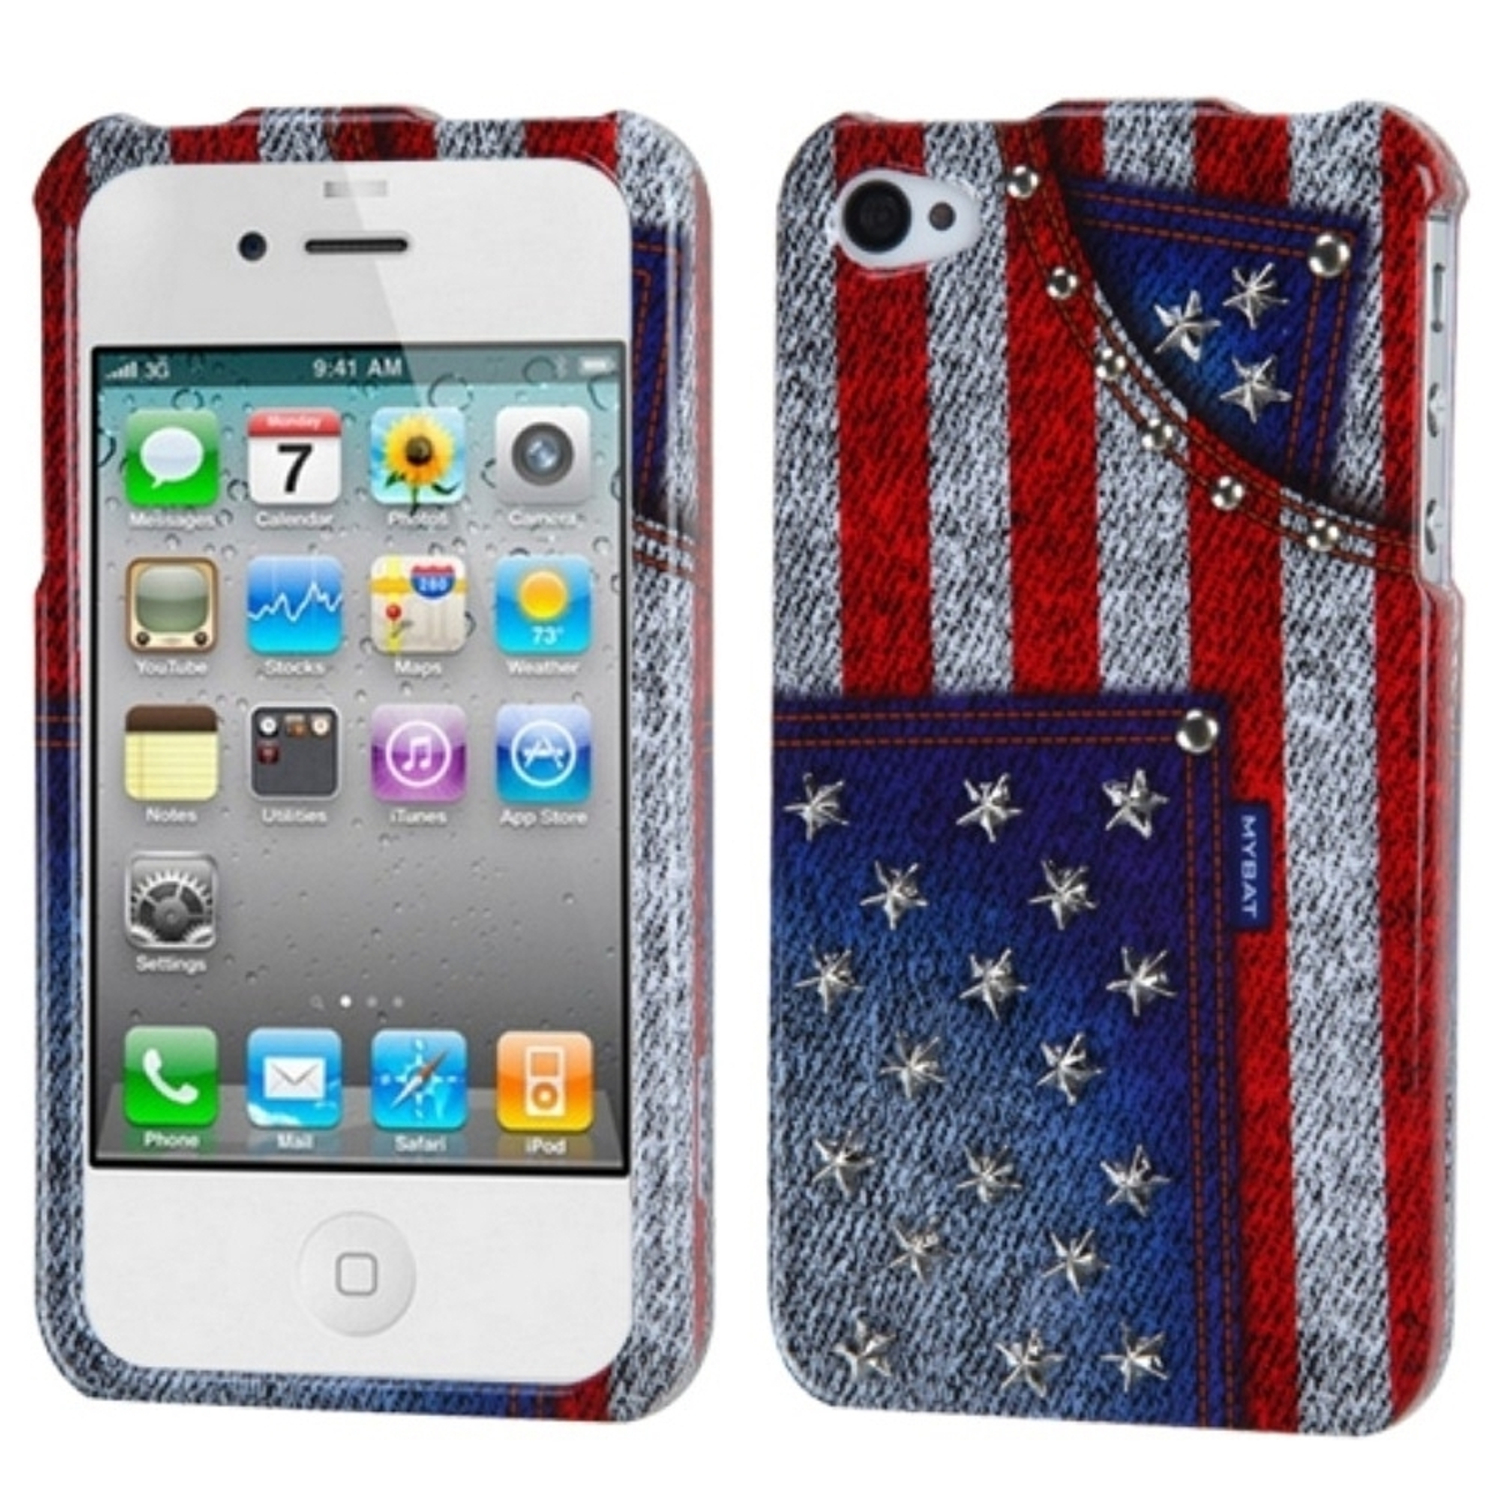 f13c1a26762e0f Insten American-Jeans Snap-On Phone Cover Hard Case Skin For Apple iPhone 4  4S